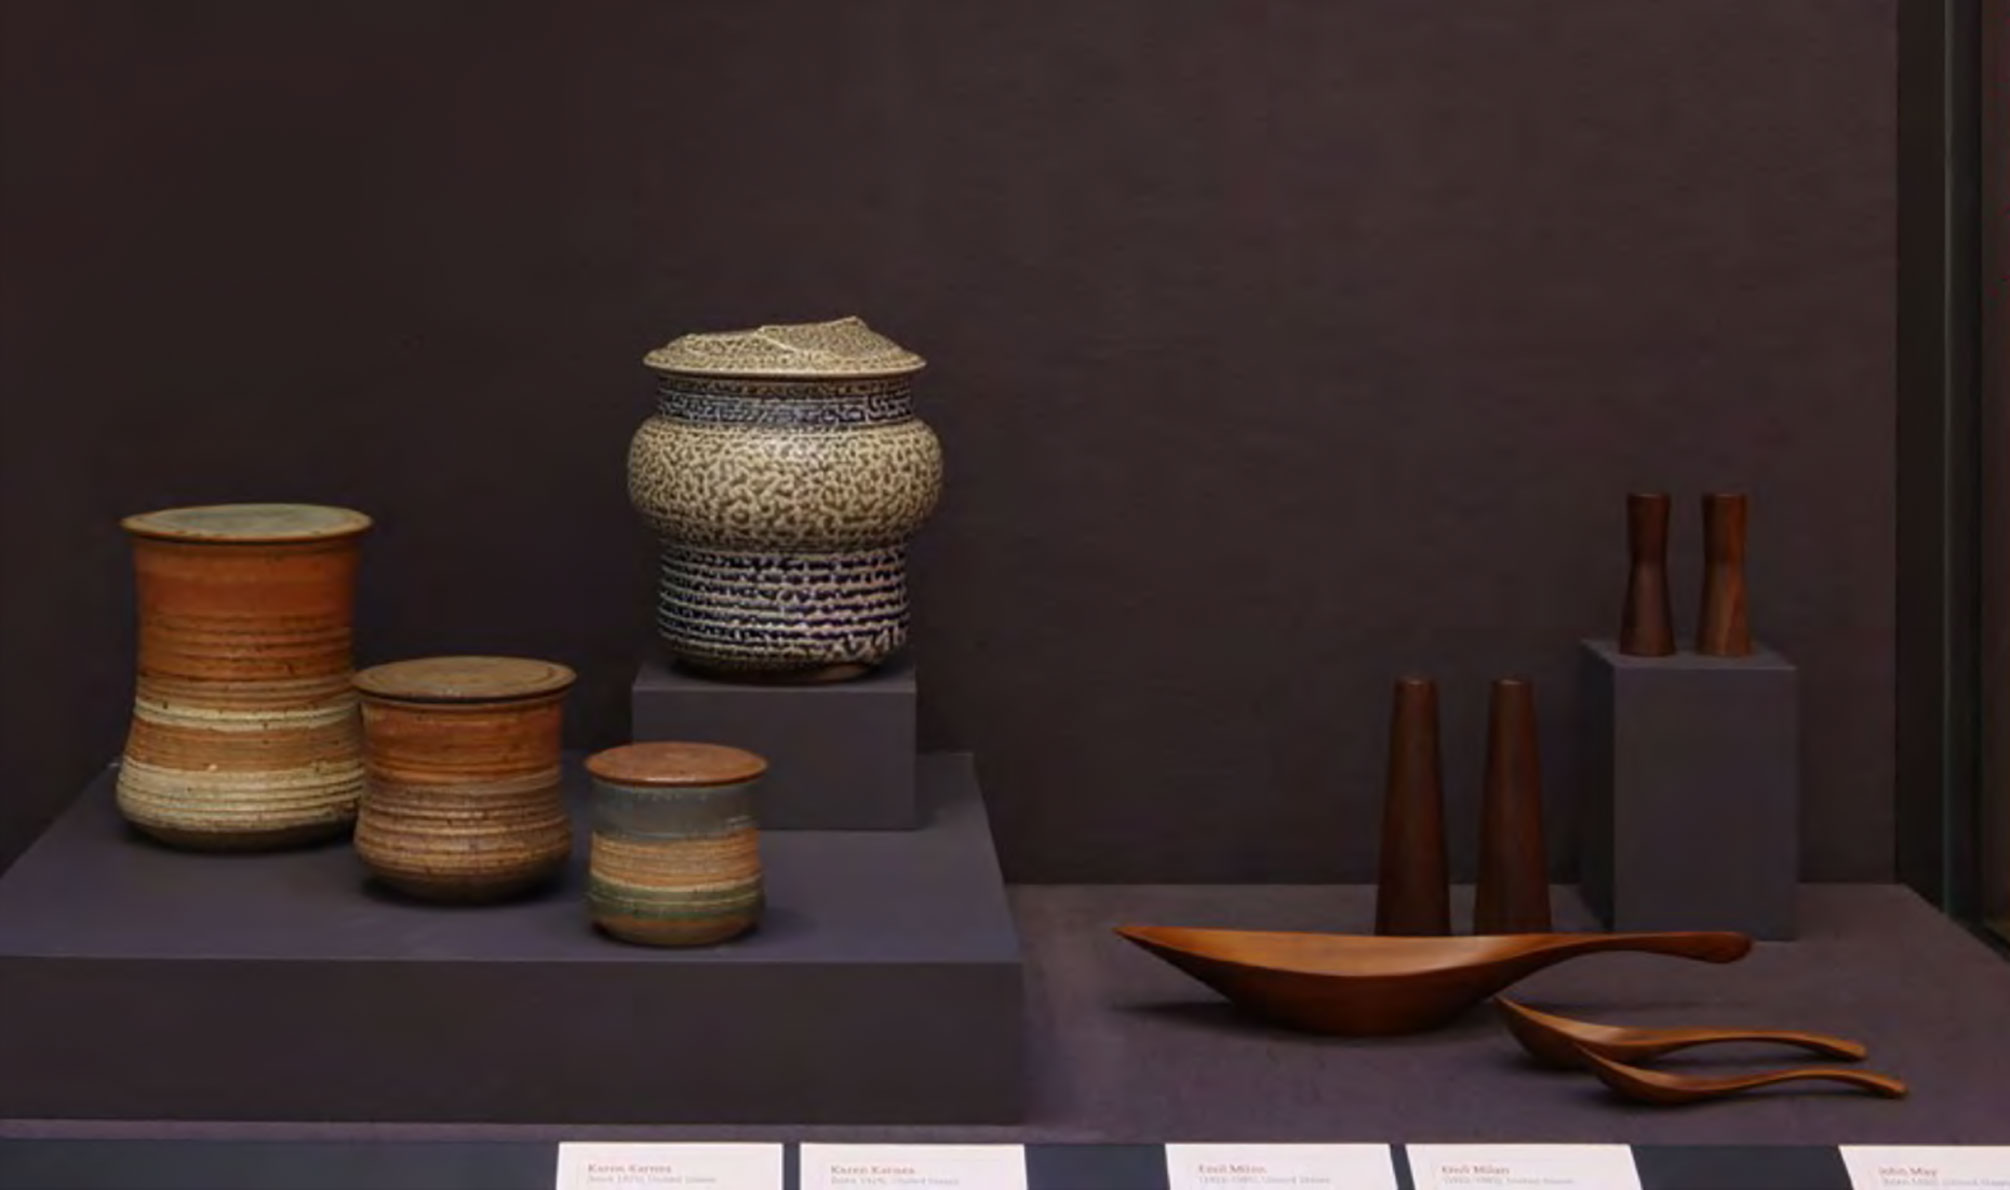 Emil MIlan's works (right) on display next to those of legendary potter Karen Karnes (right).Installation image from  Eat Drink Art Design  (September 21, 2010 – March 27, 2011). Courtesy of the Museum of Arts and Design.